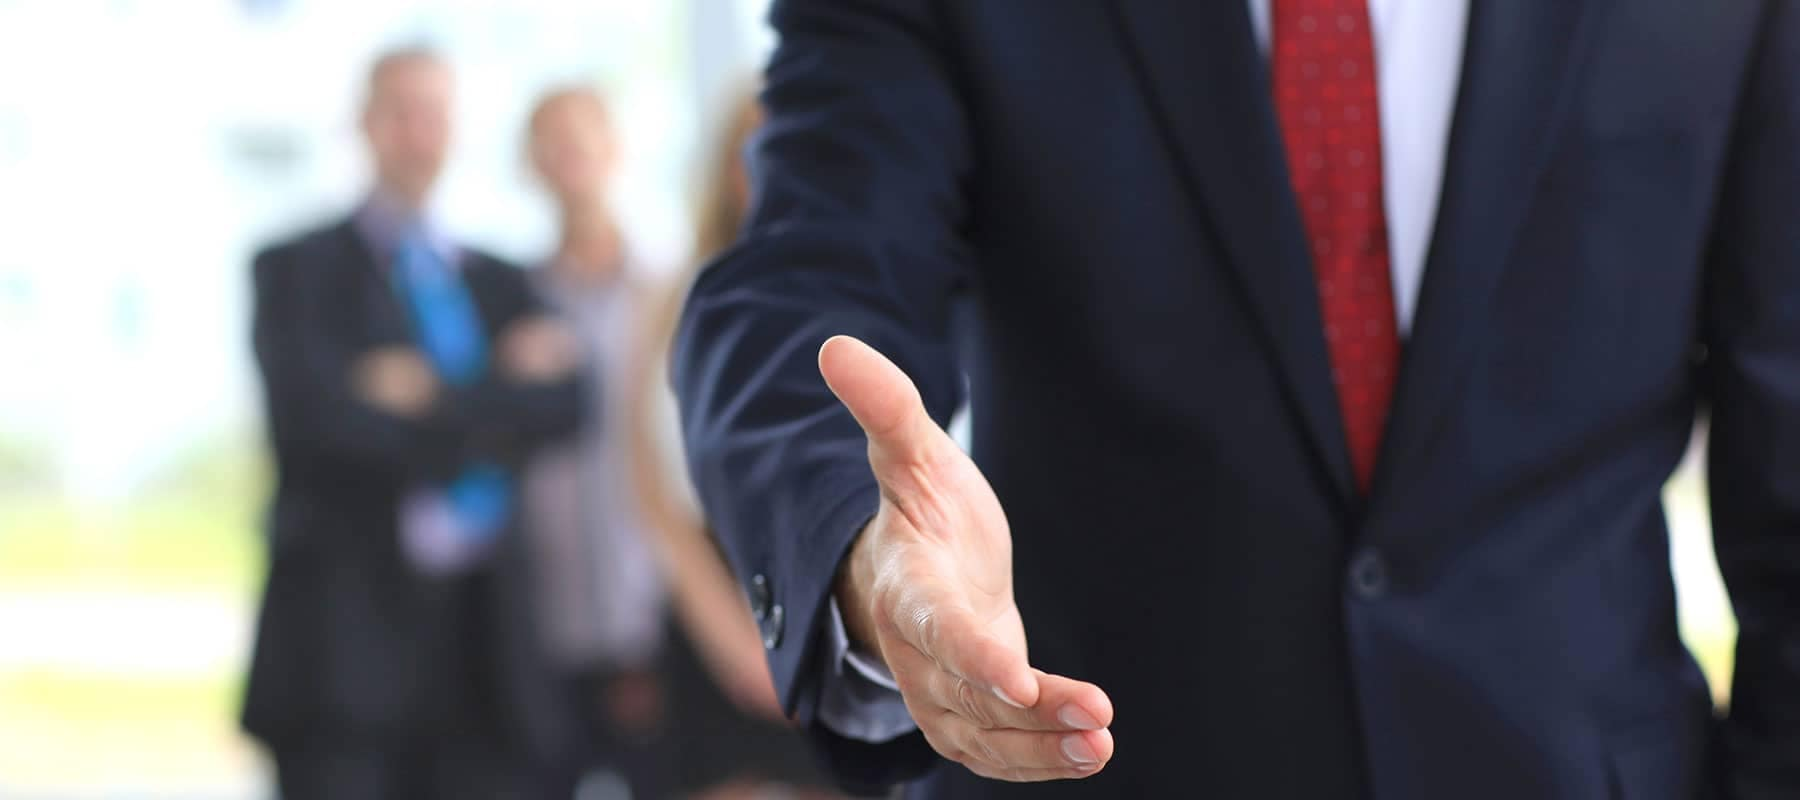 man in suit reaches out for handshake